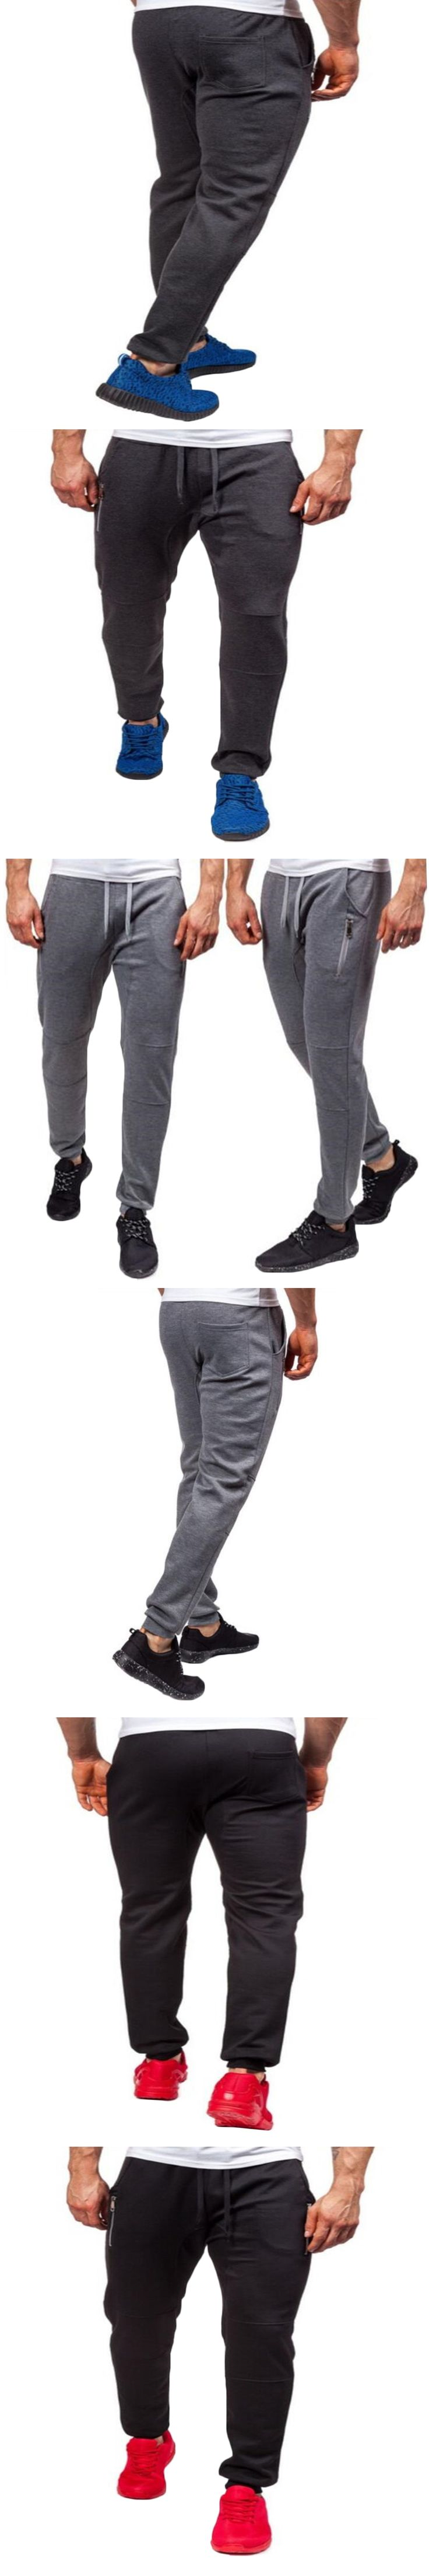 Mens Slim Fit Sweatpants Casual Tracksuit Bottoms Plain Men Fitness Workout Pants Track Long Joggers Sporting Trousers